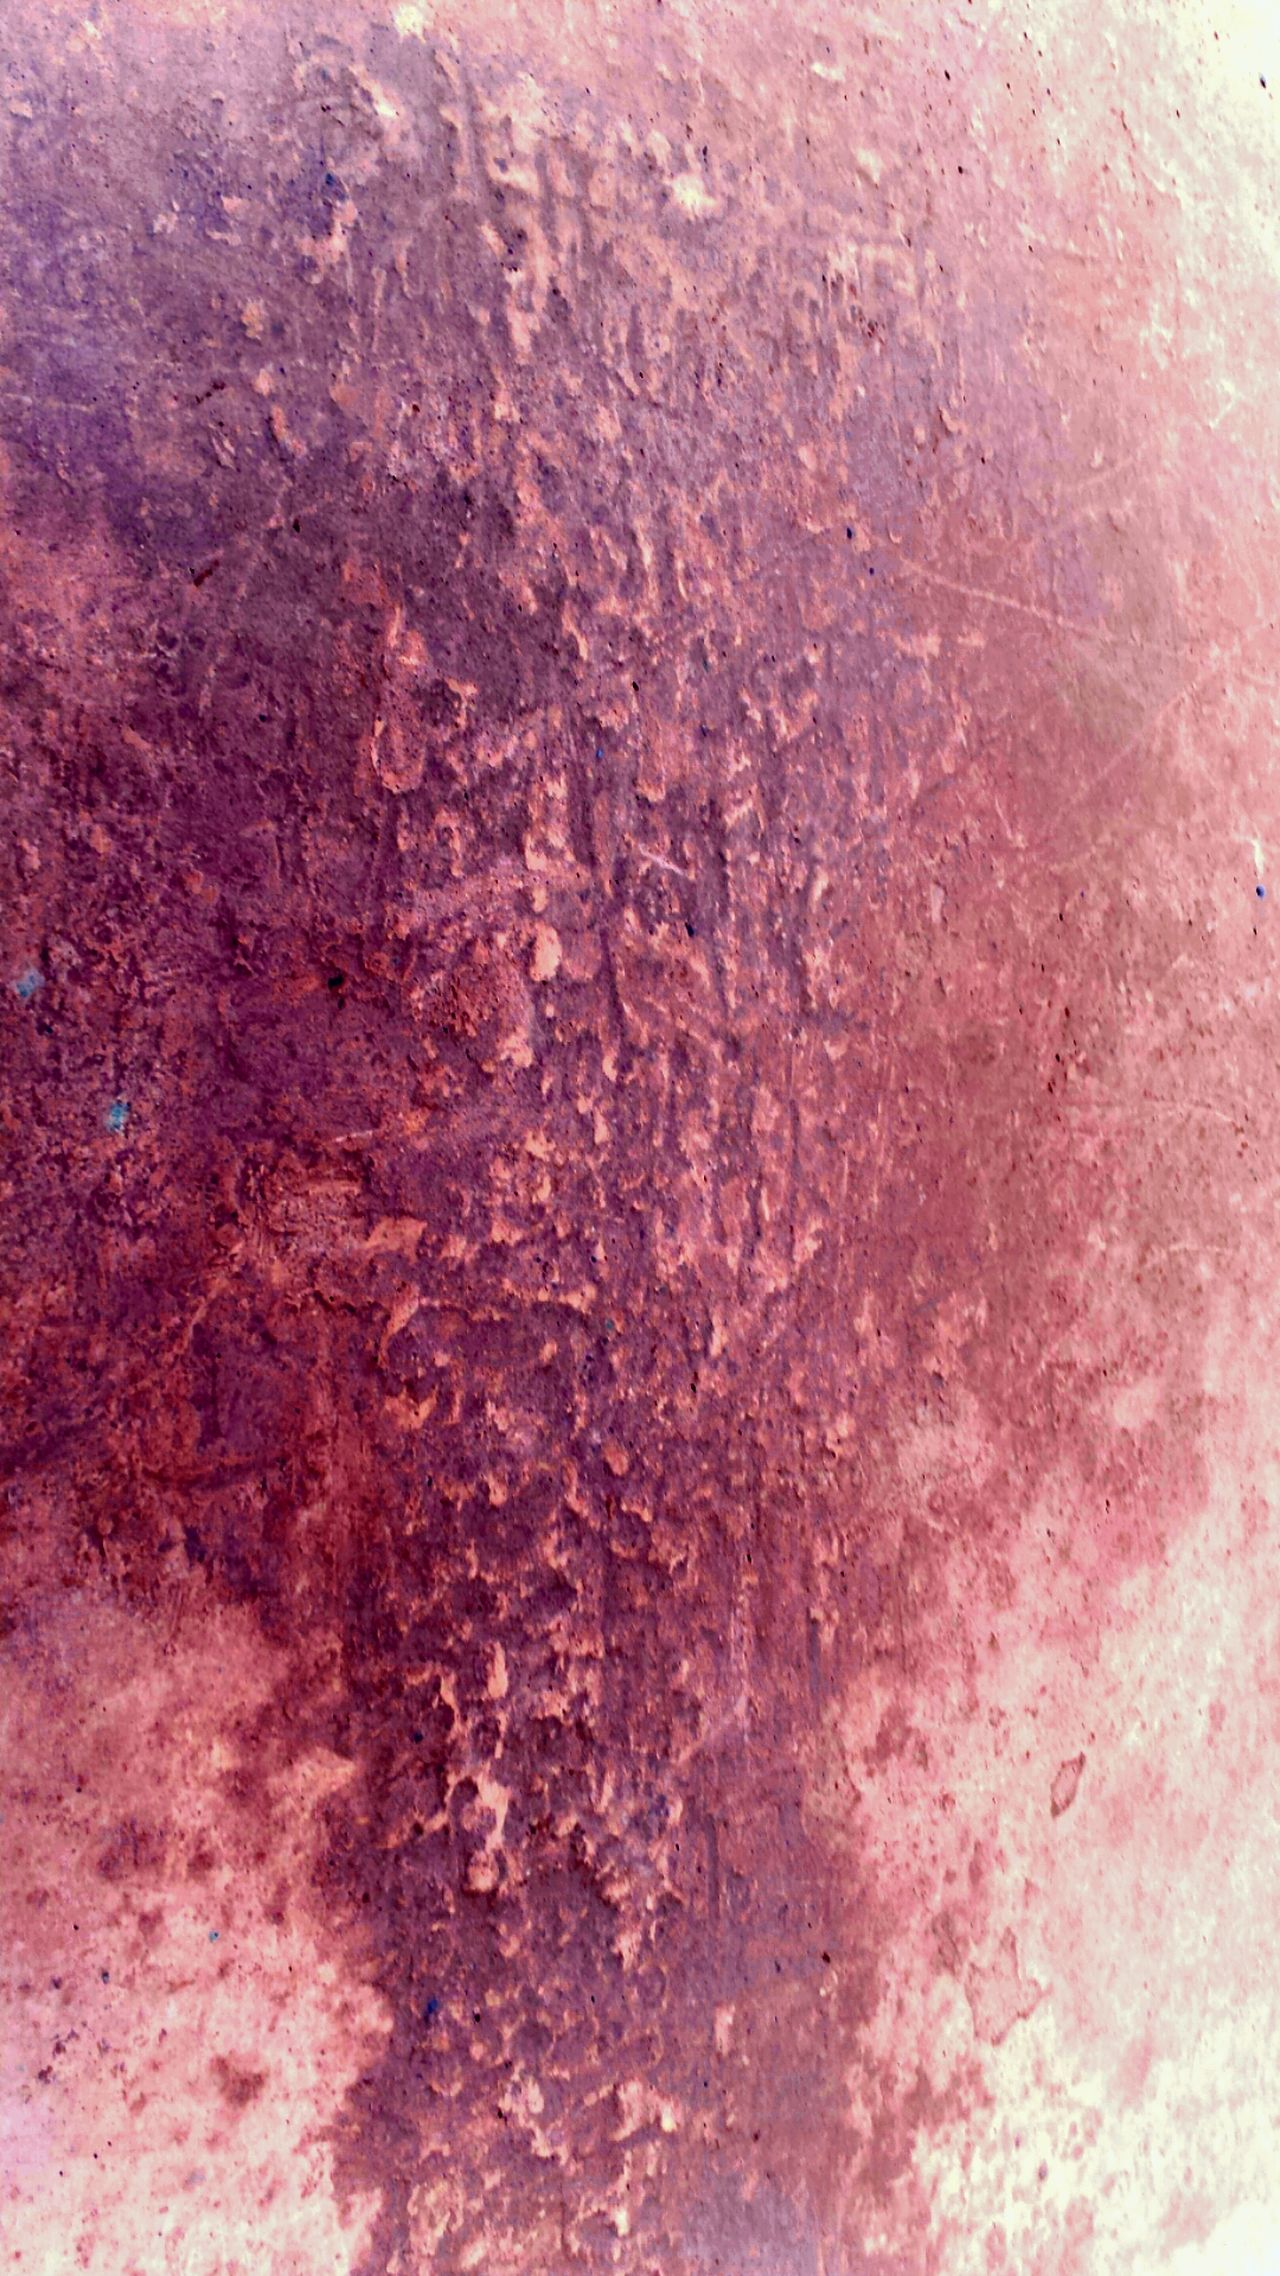 Red Full Frame Close-up Backgrounds Textured  Abstract No People Day Outdoors Growth Representing Freshness Beauty In Nature Ancient Spainish Mexican Apache Industrial Art Decay Abstract Photography Abstract Expressionism